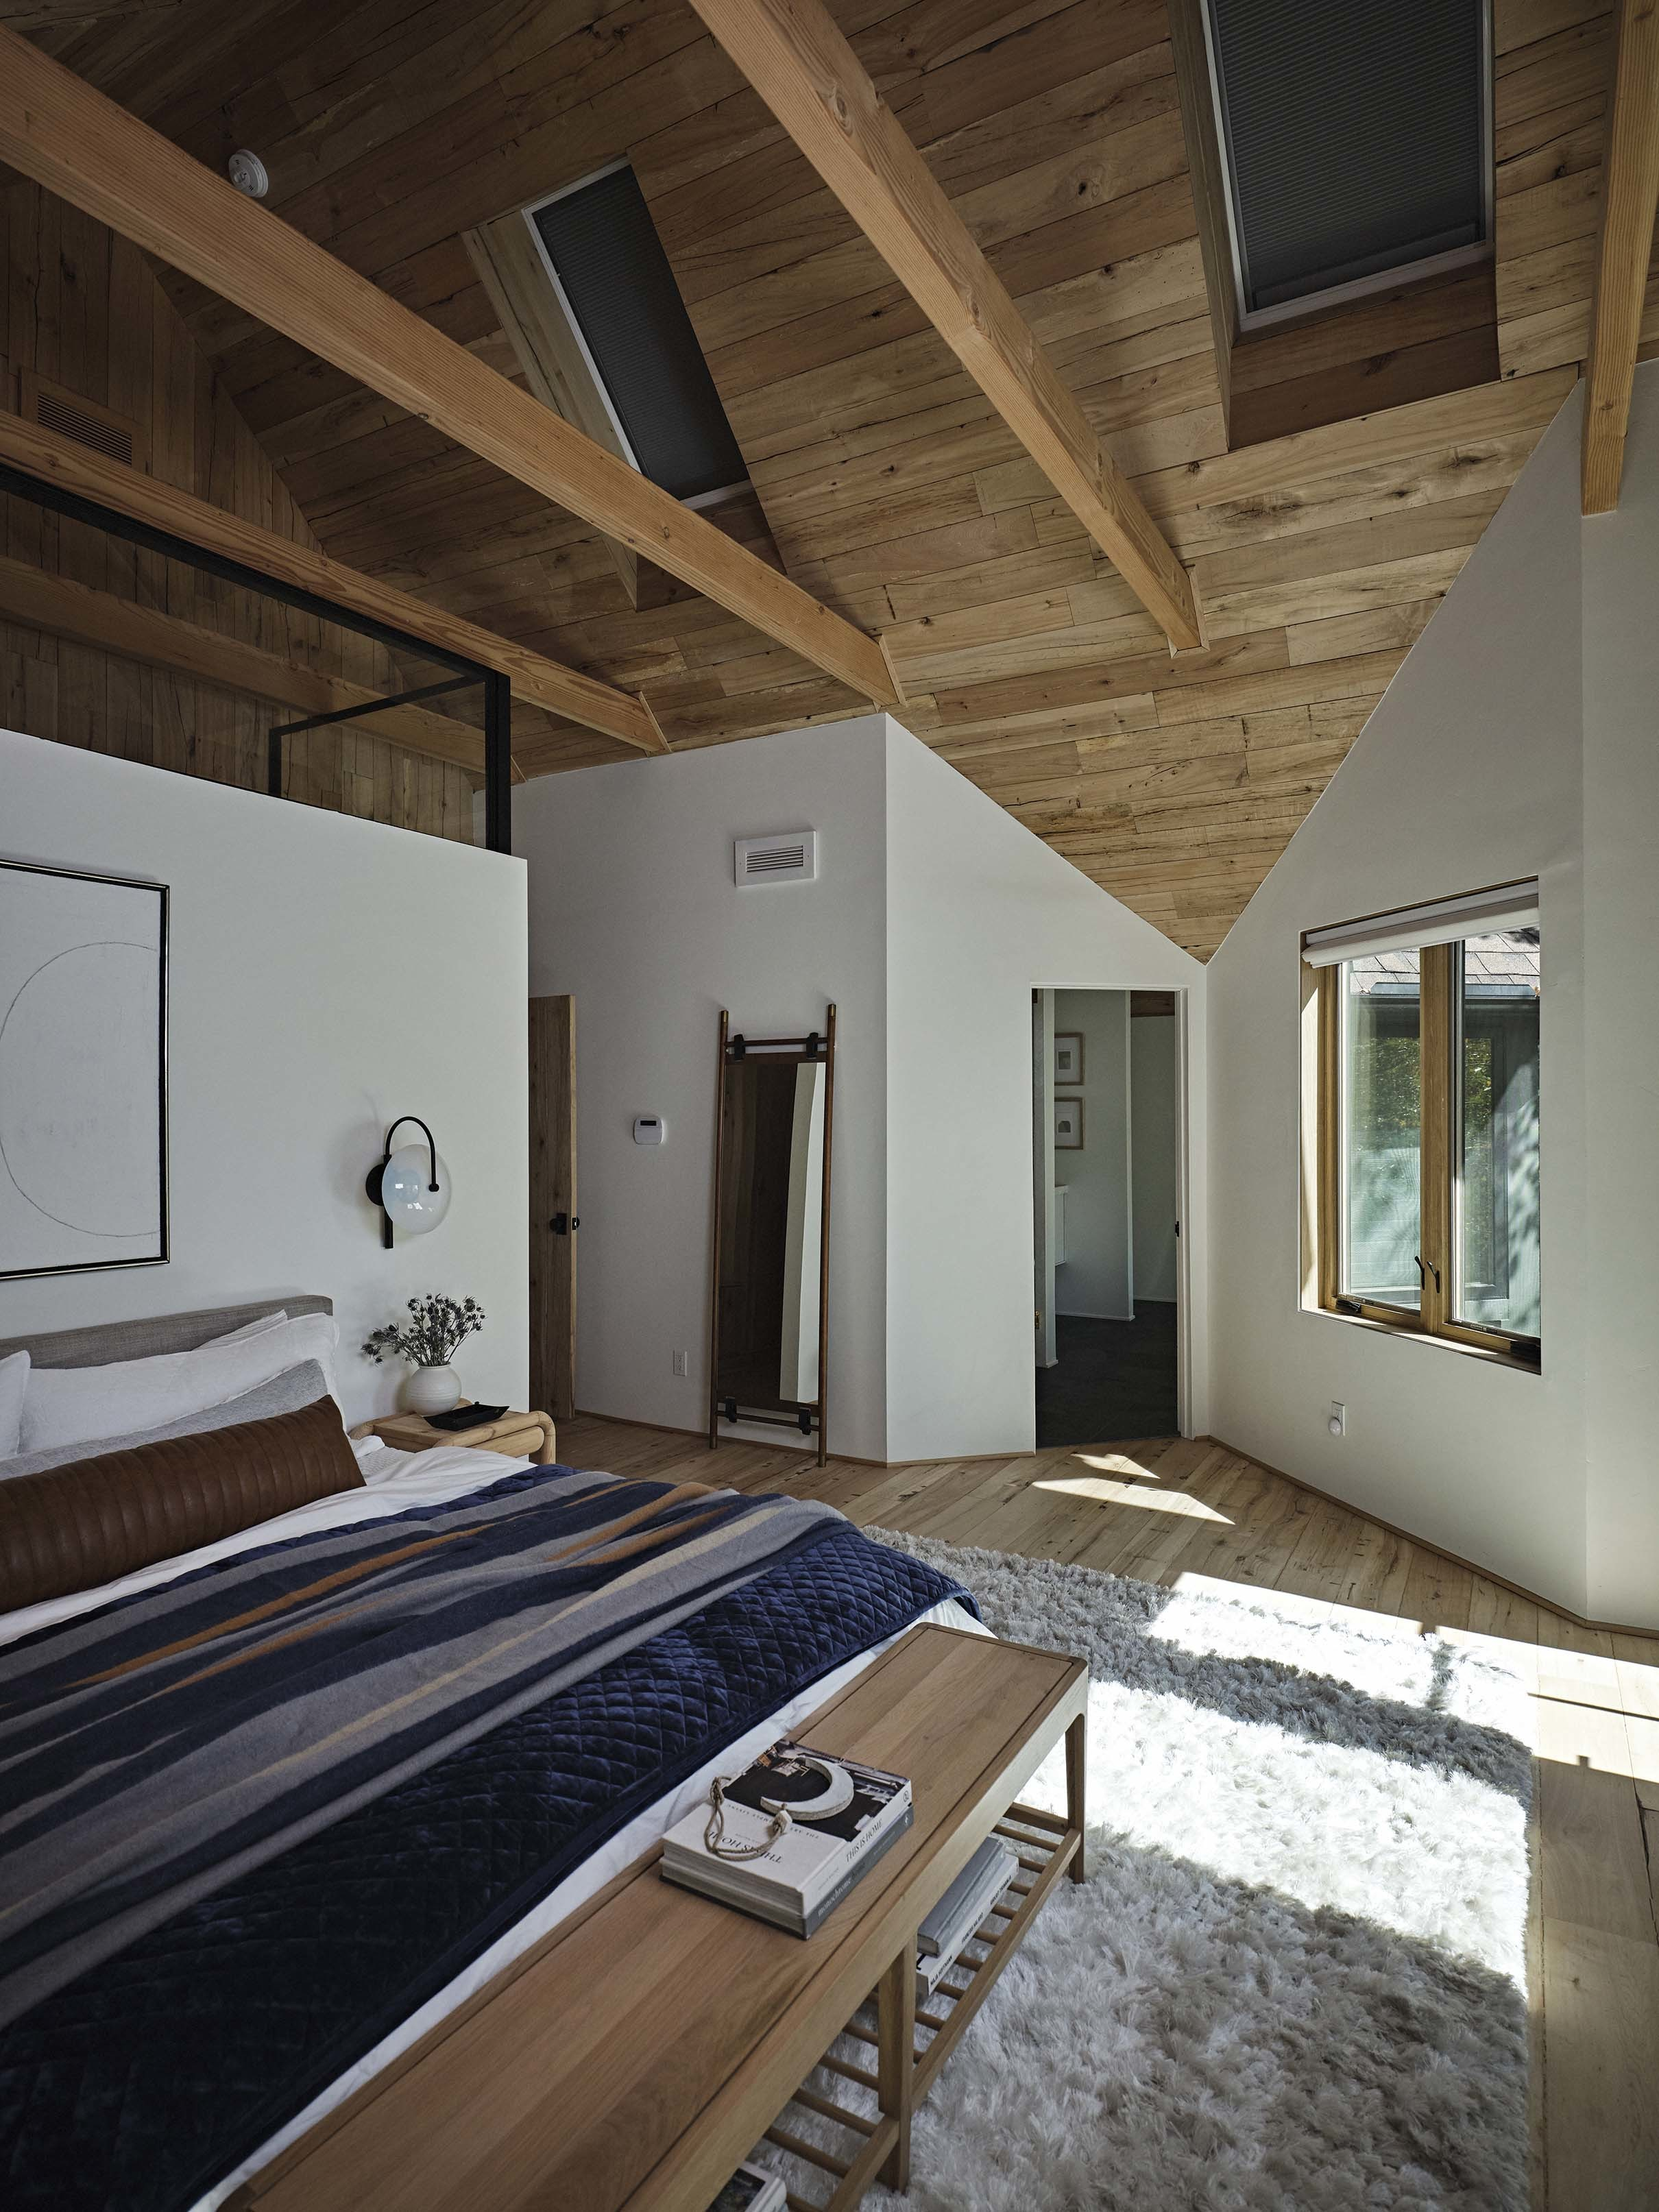 Bedroom with skylights shades closed